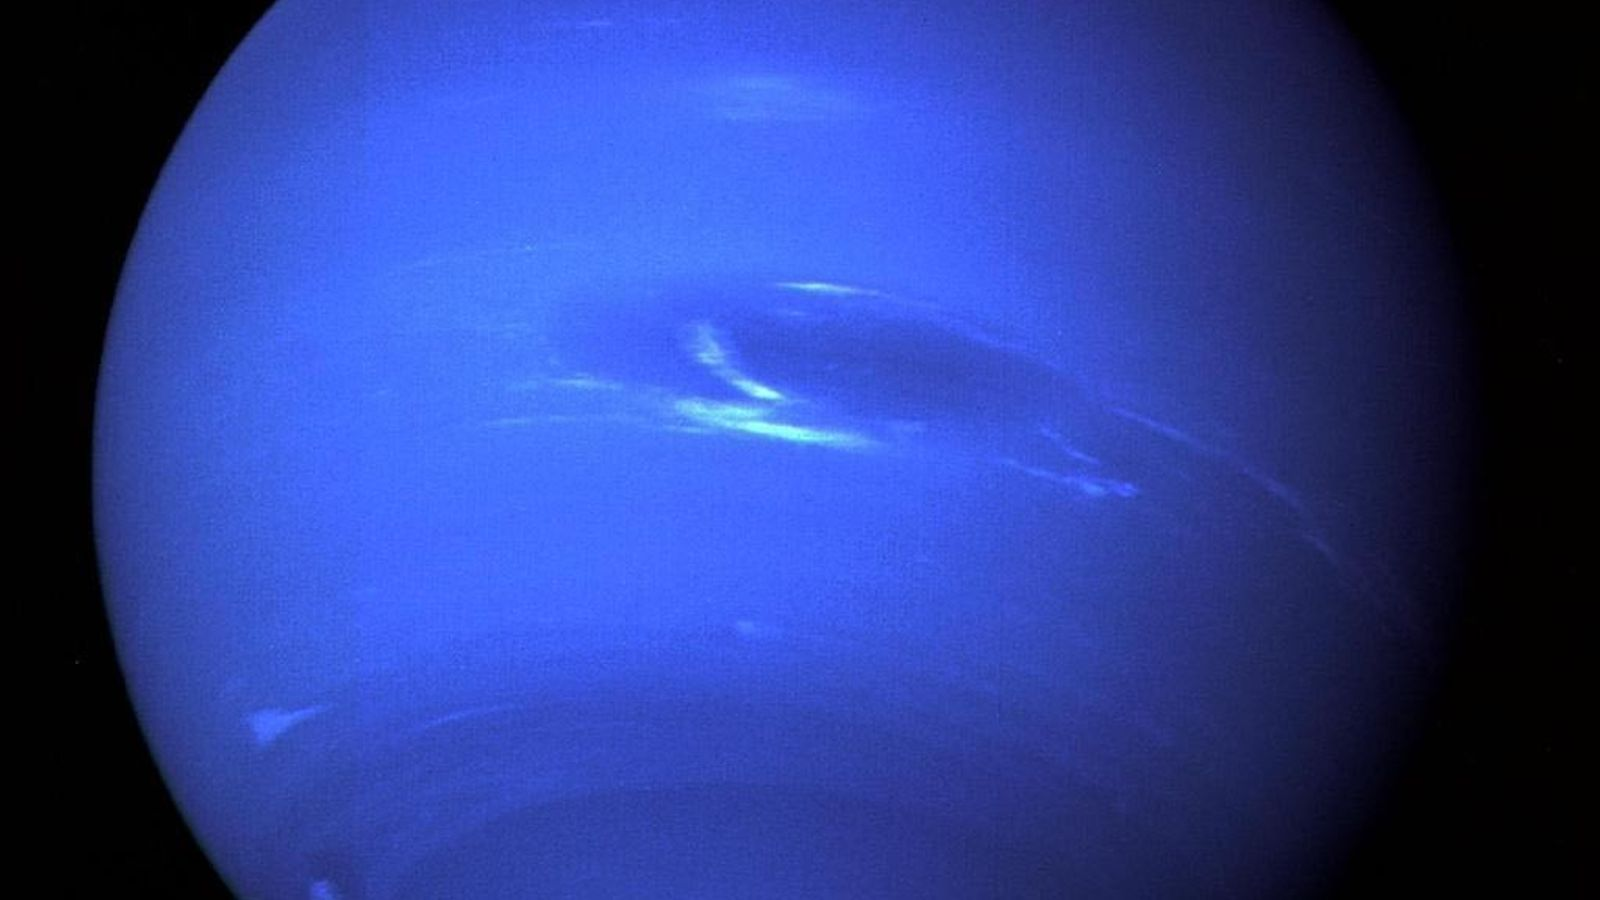 The eighth planet Neptune gleams bright blue in this image from Voyager 2, taken from a ...